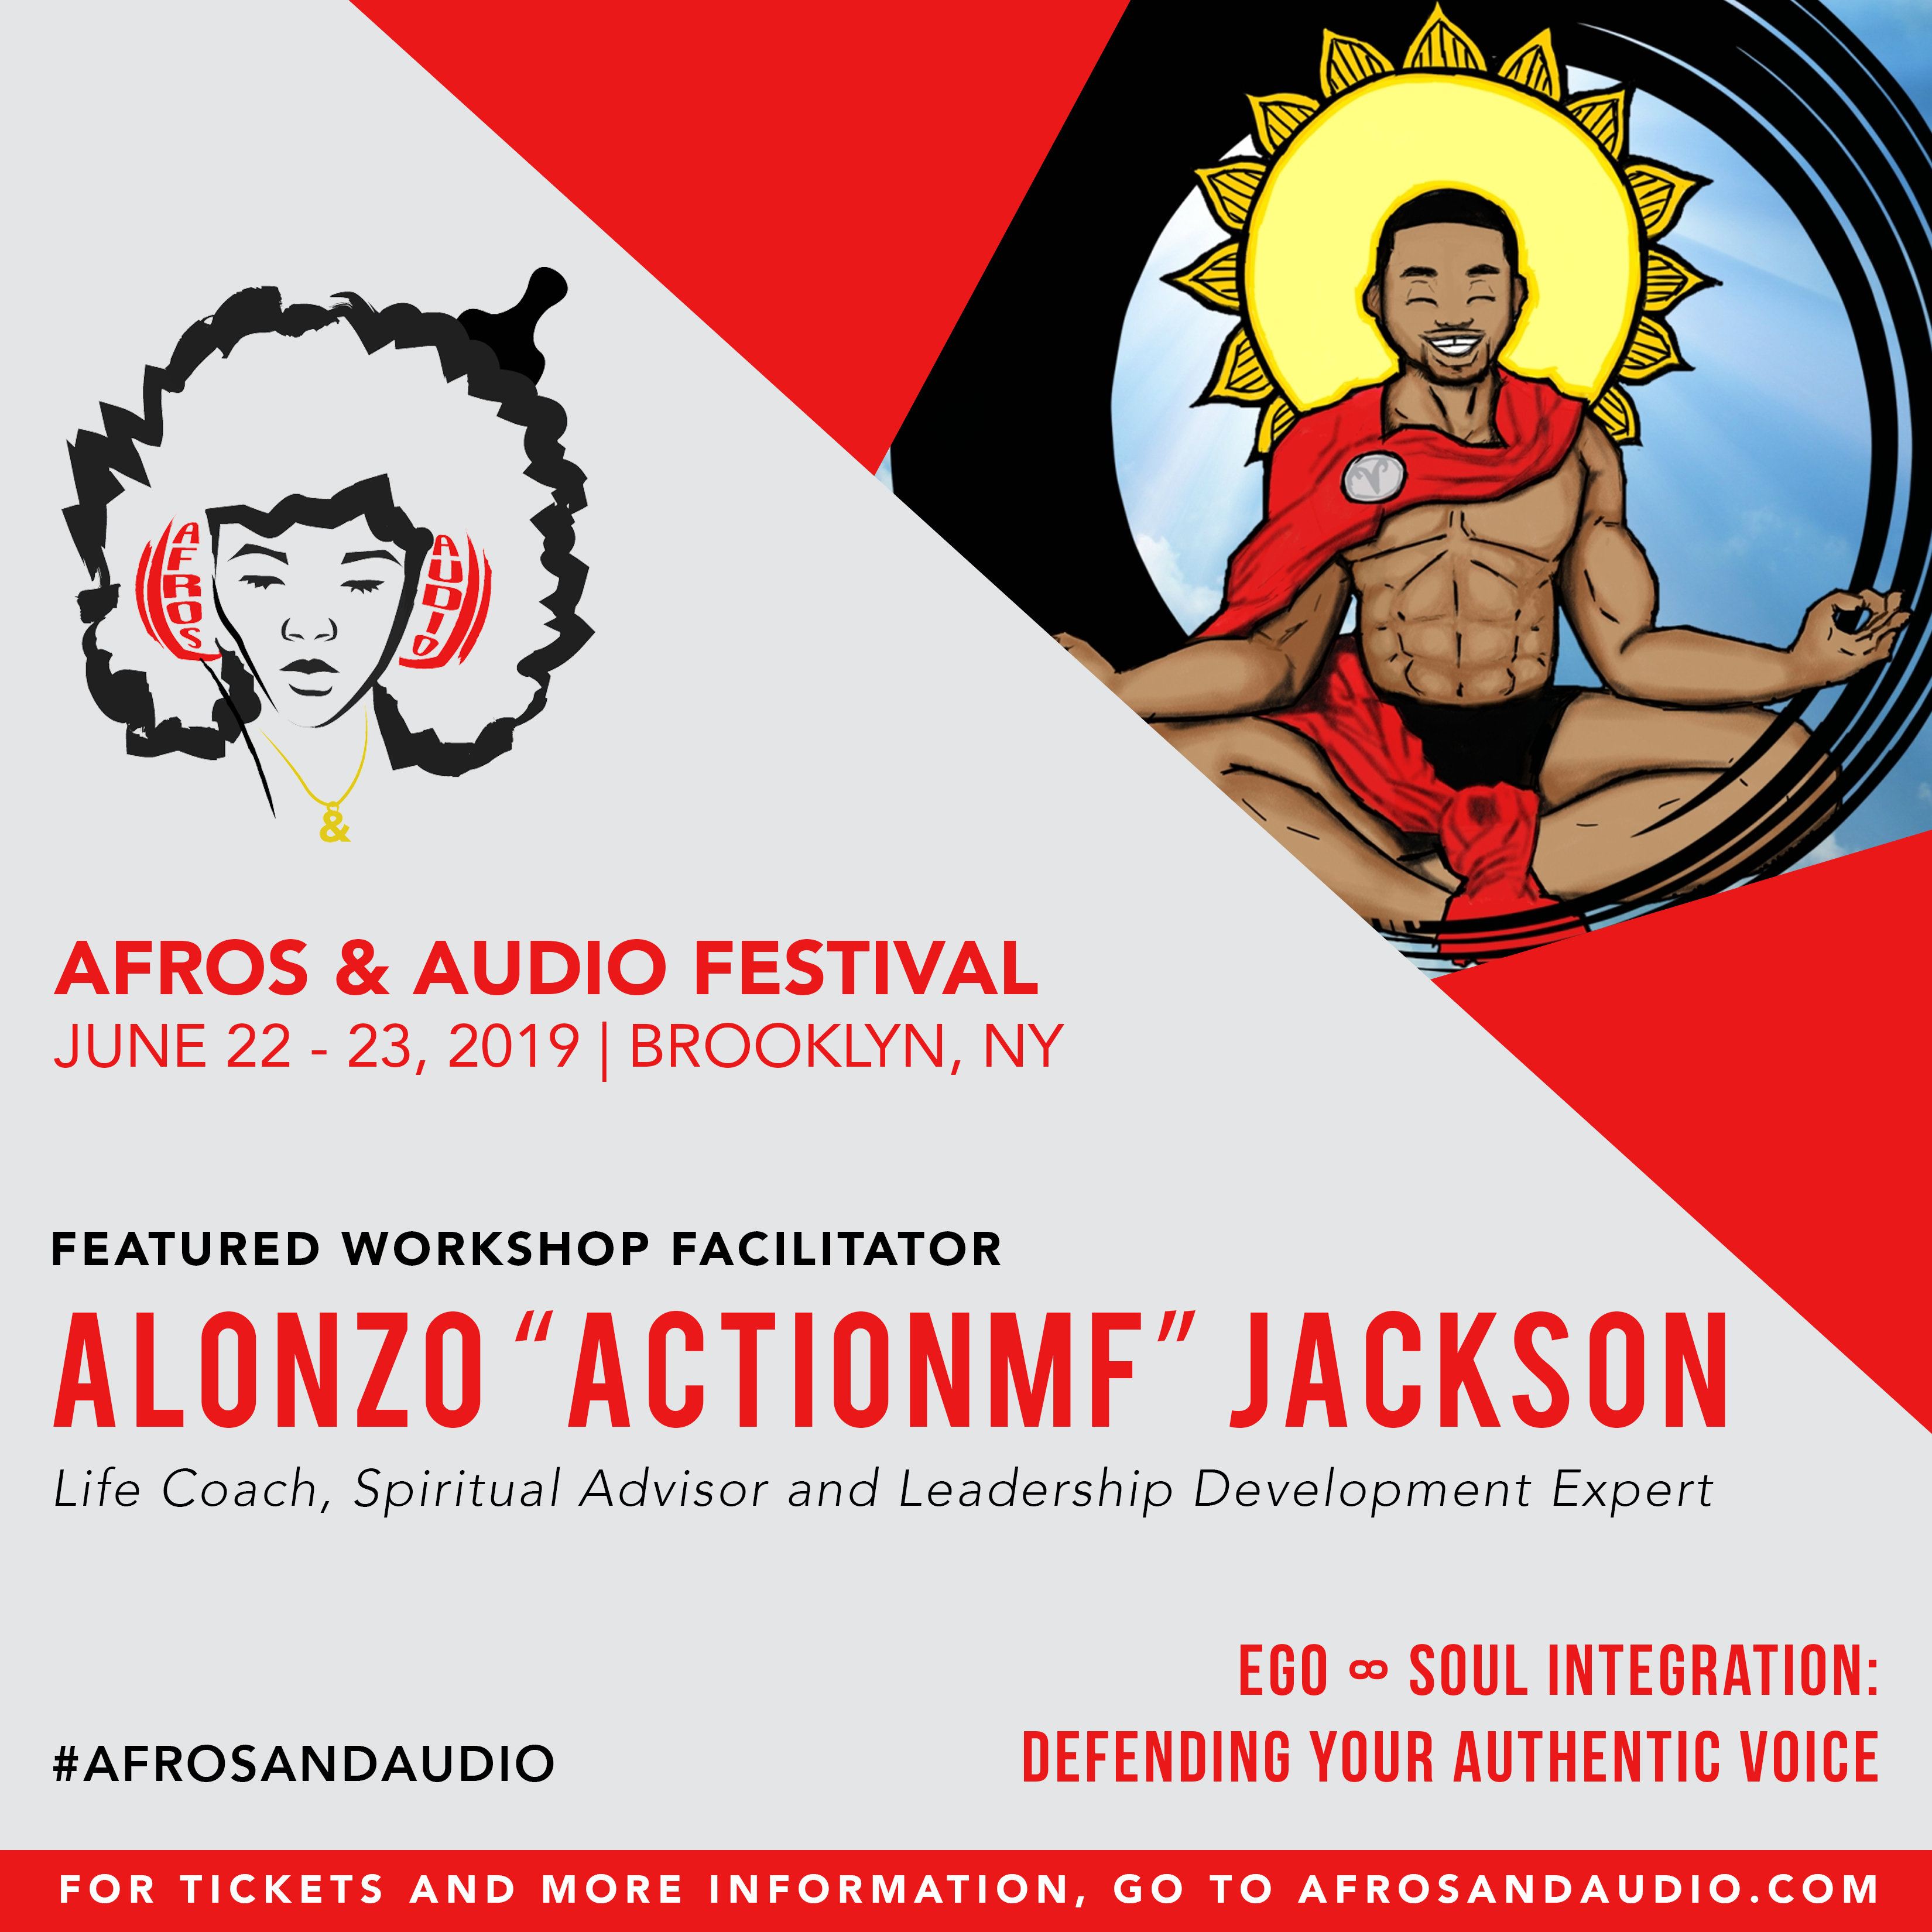 AfrosandAudio Presenter Posts - ACTIONMF